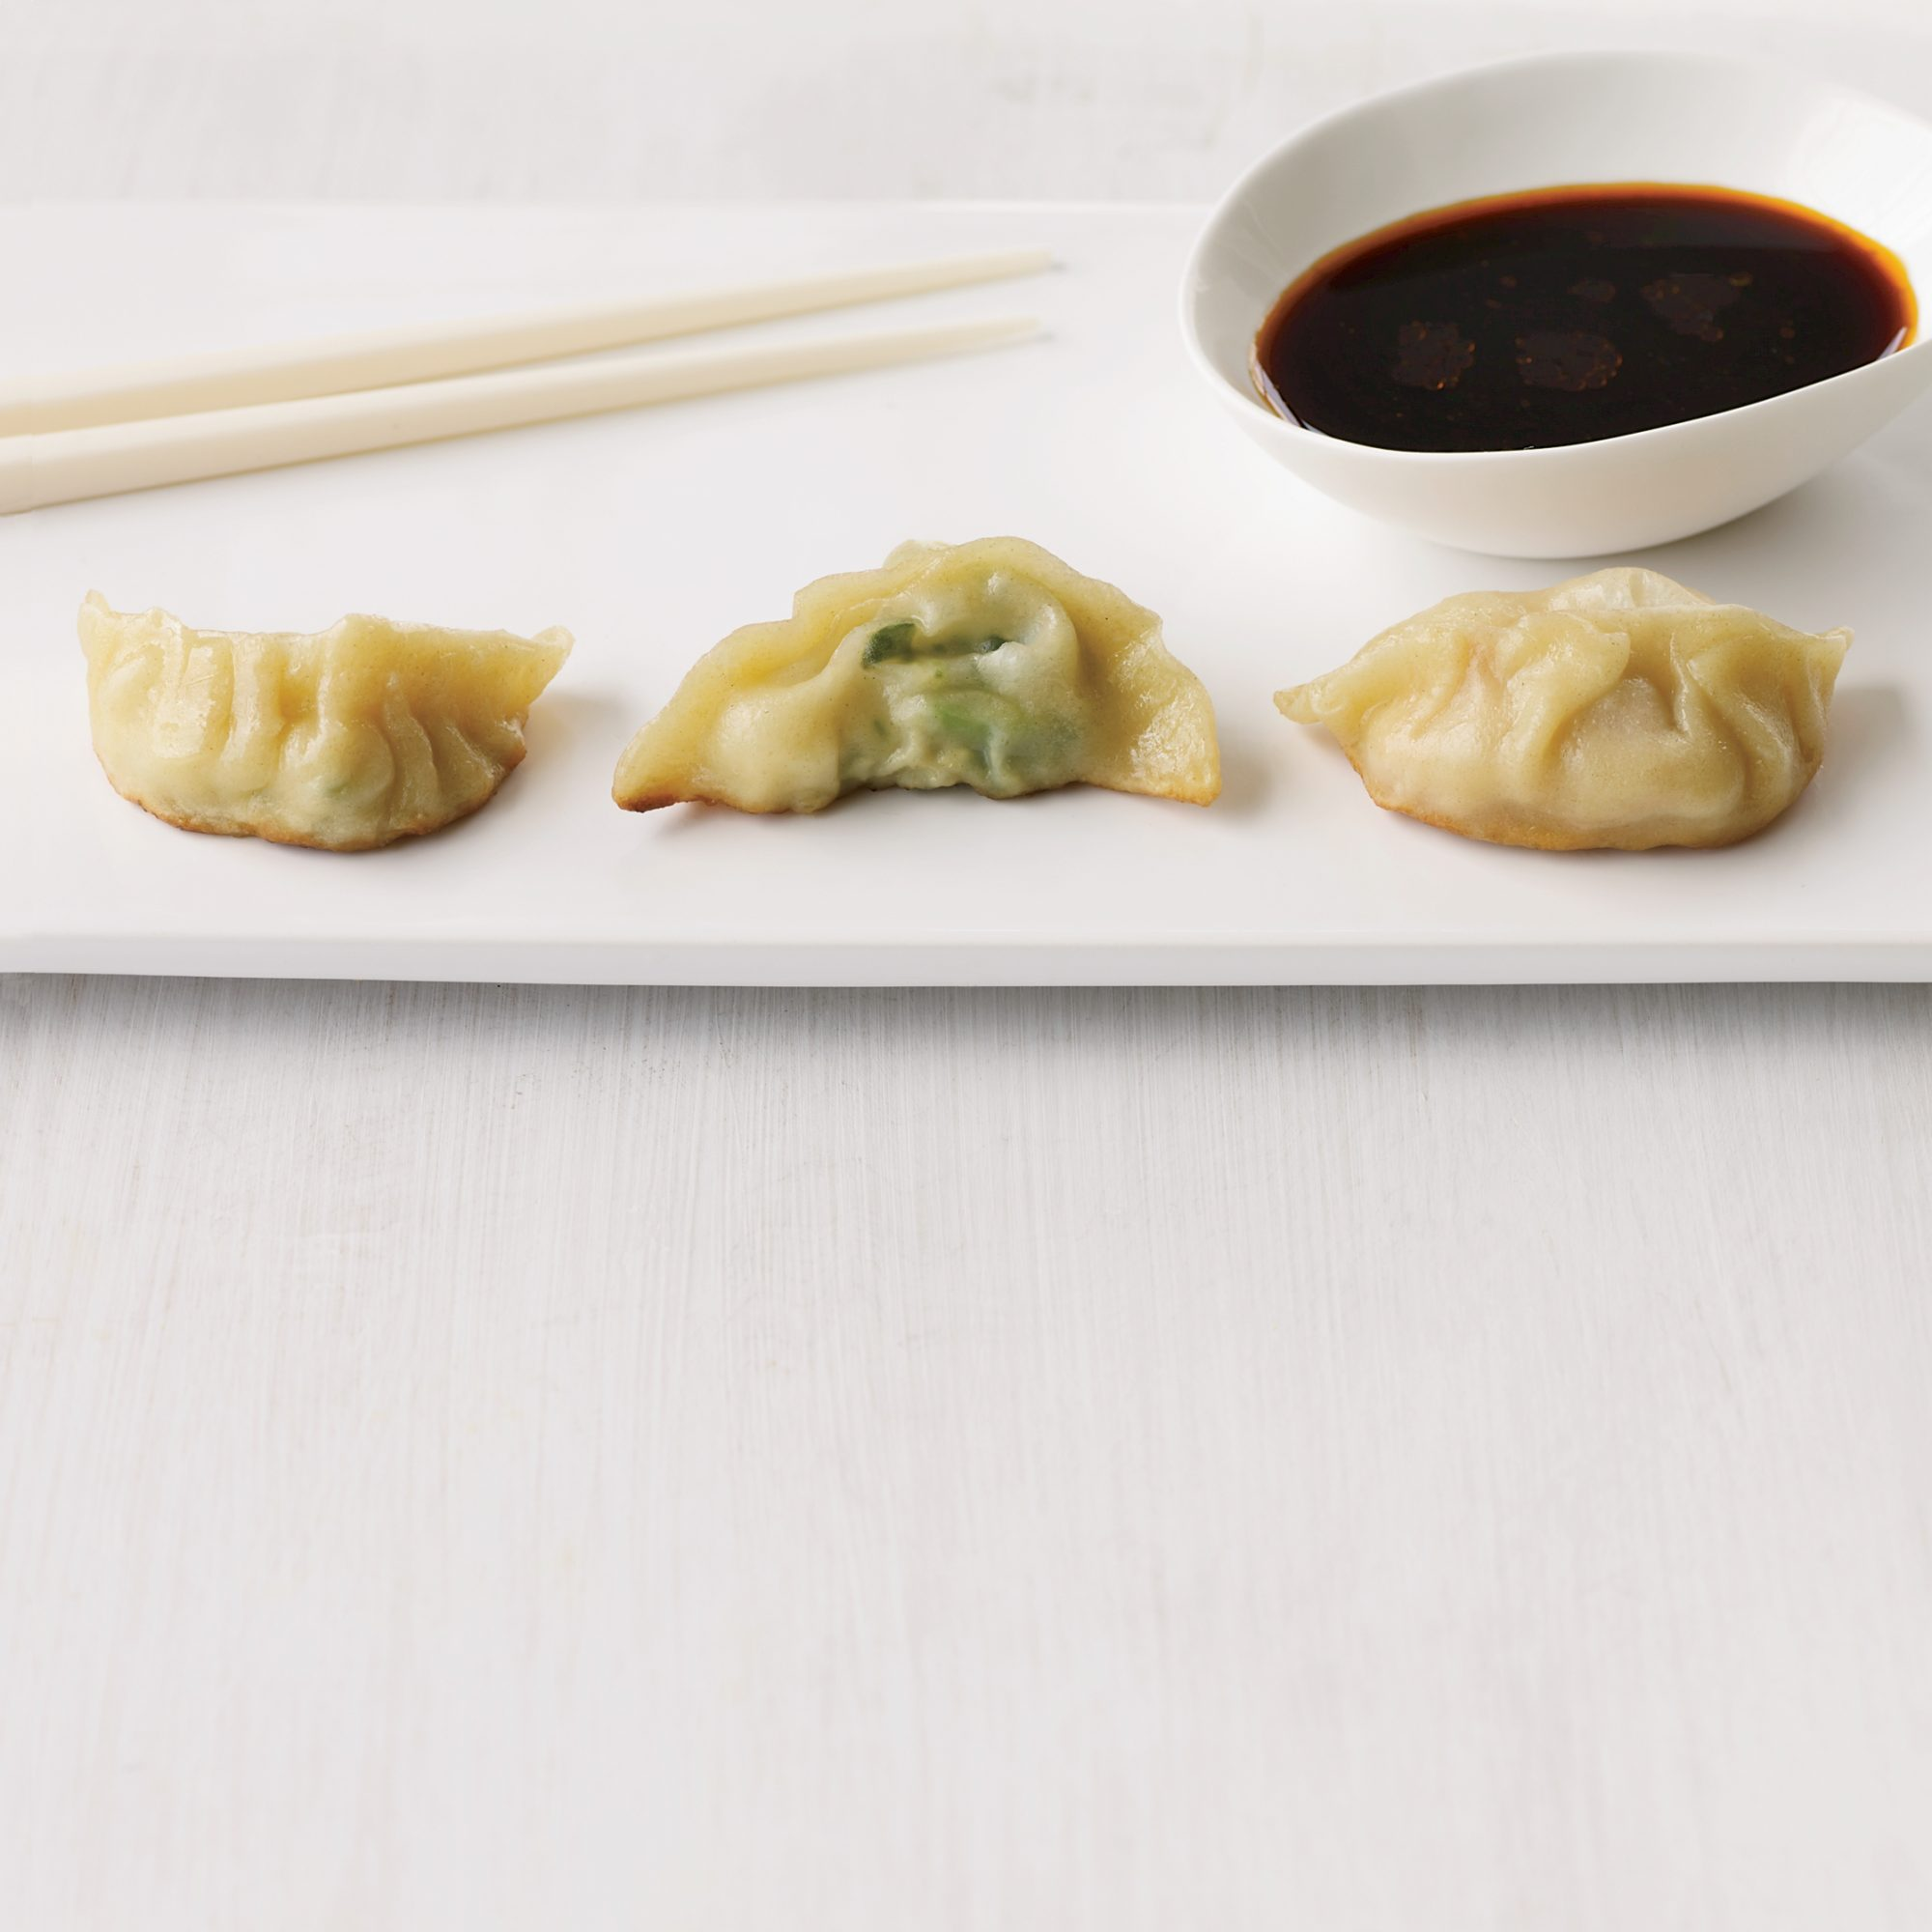 Dumplings, Gyoza and Pot Stickers